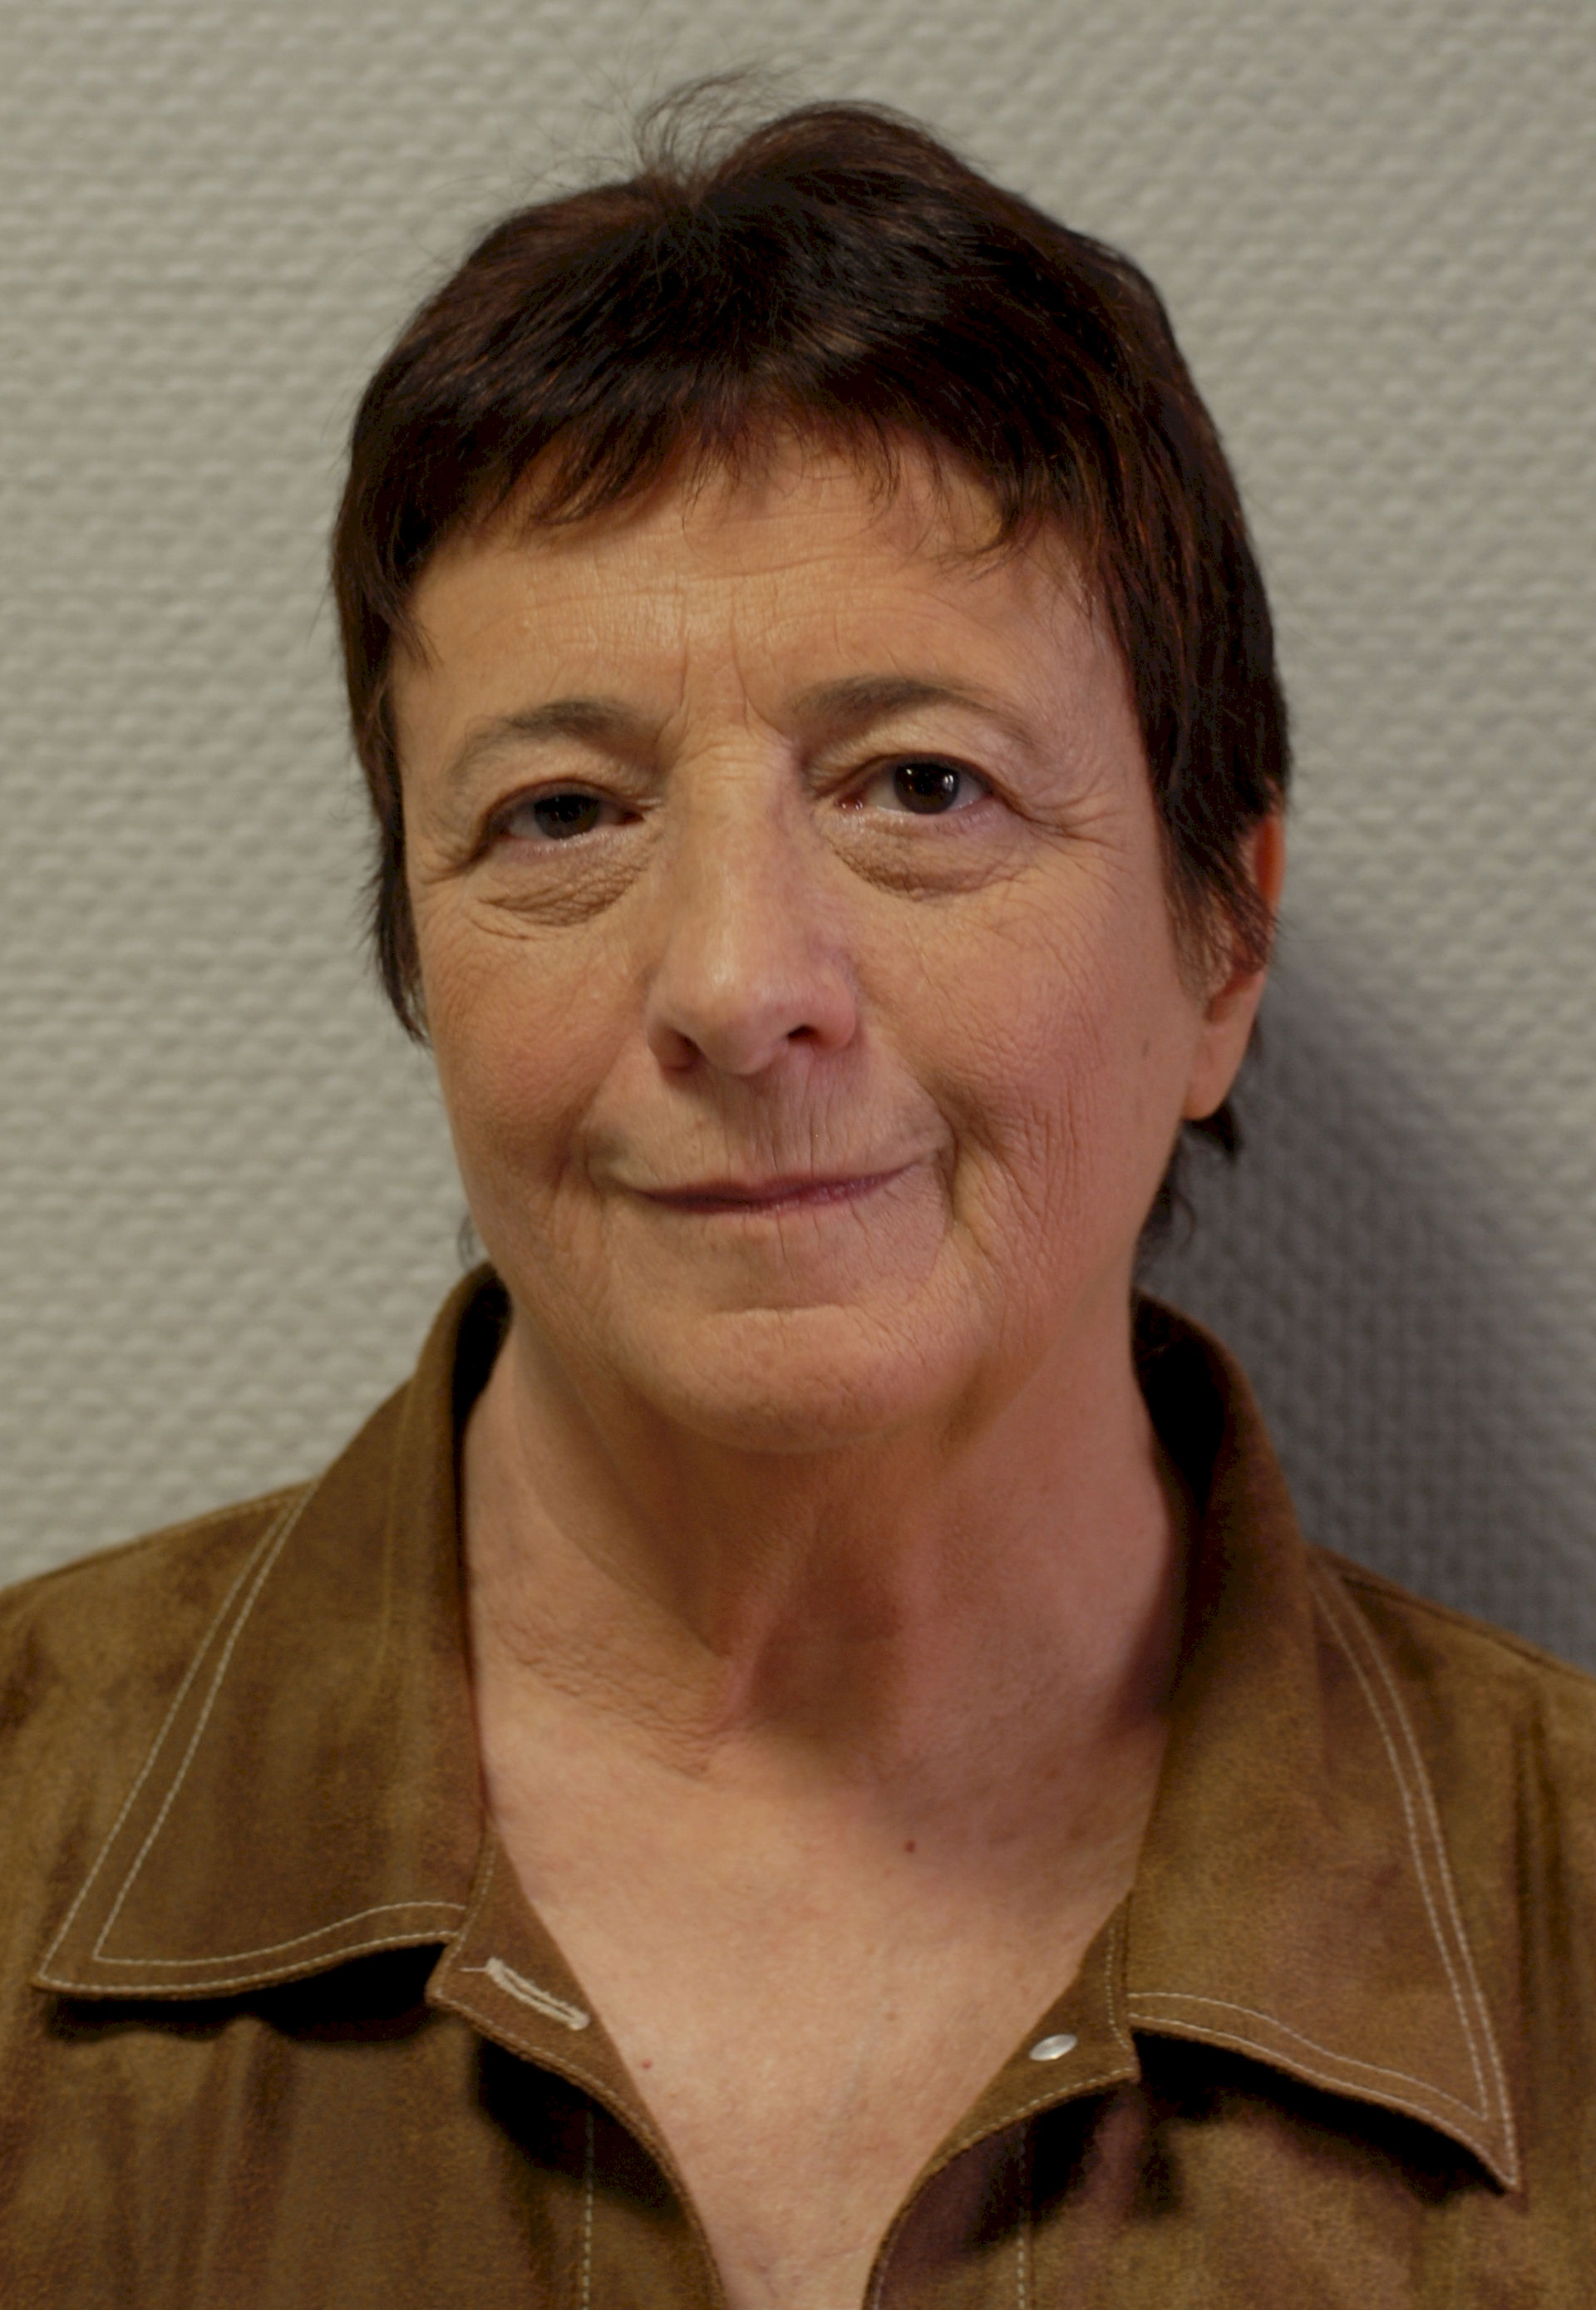 Photo of Arlette Laguiller: French Trotskyist politician